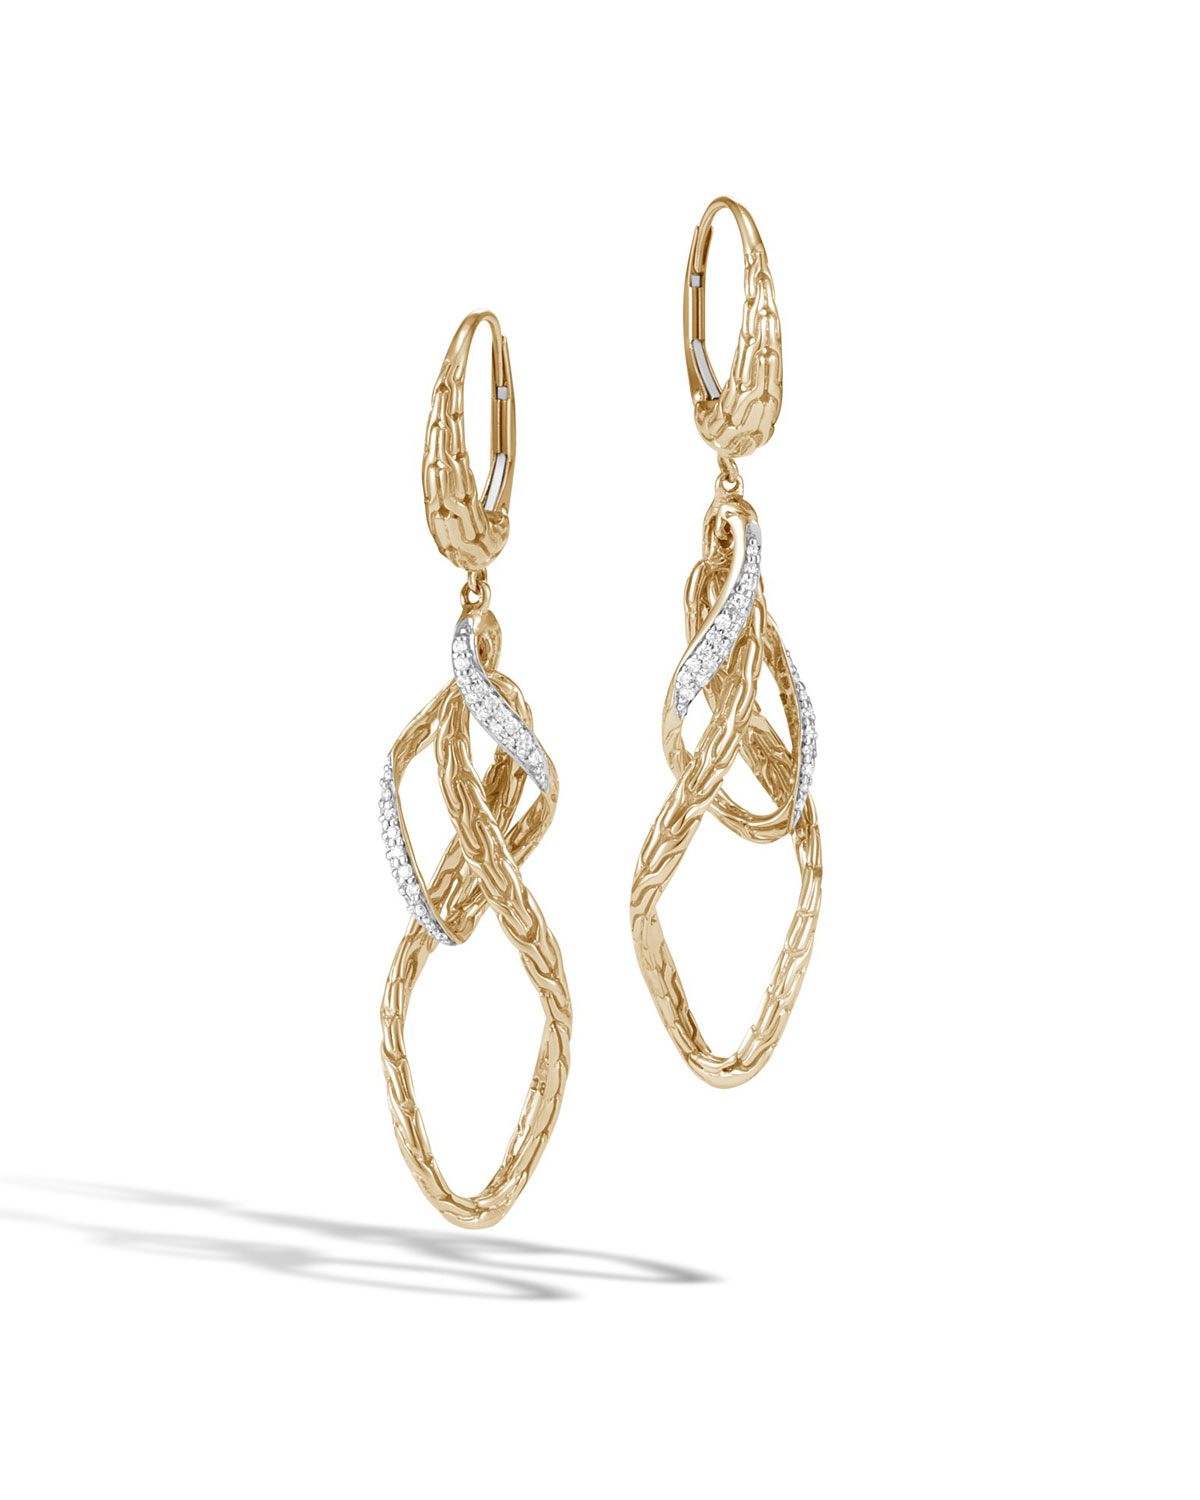 John Hardy 18k Classic Chain Double Wave Drop Earrings JLu8geawrp